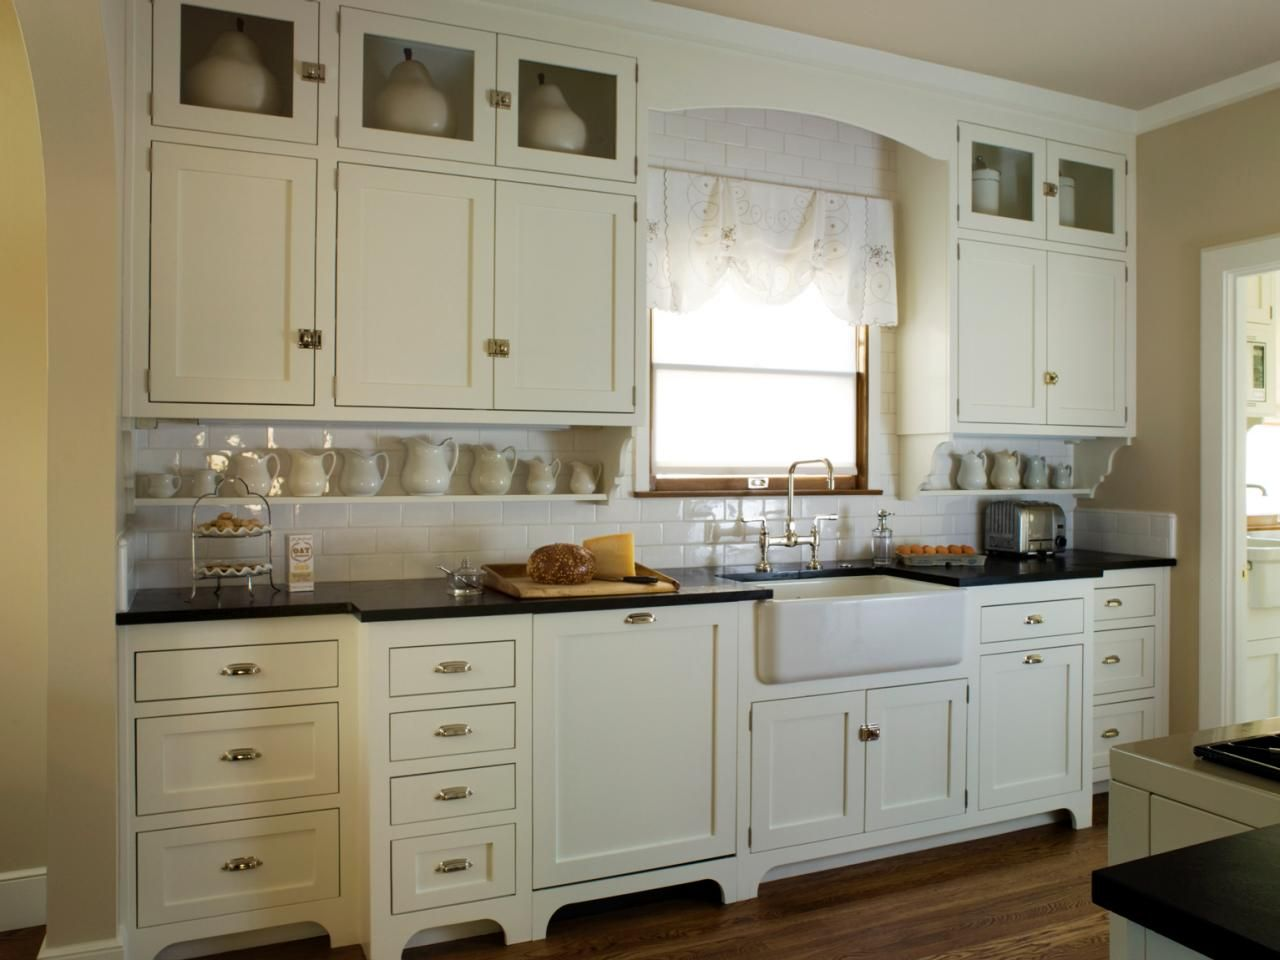 Cottage Kitchen With Antique White Shaker Cabinets Antique White Kitchen Cabinets Cottage Style Kitchen Antique Kitchen Cabinets